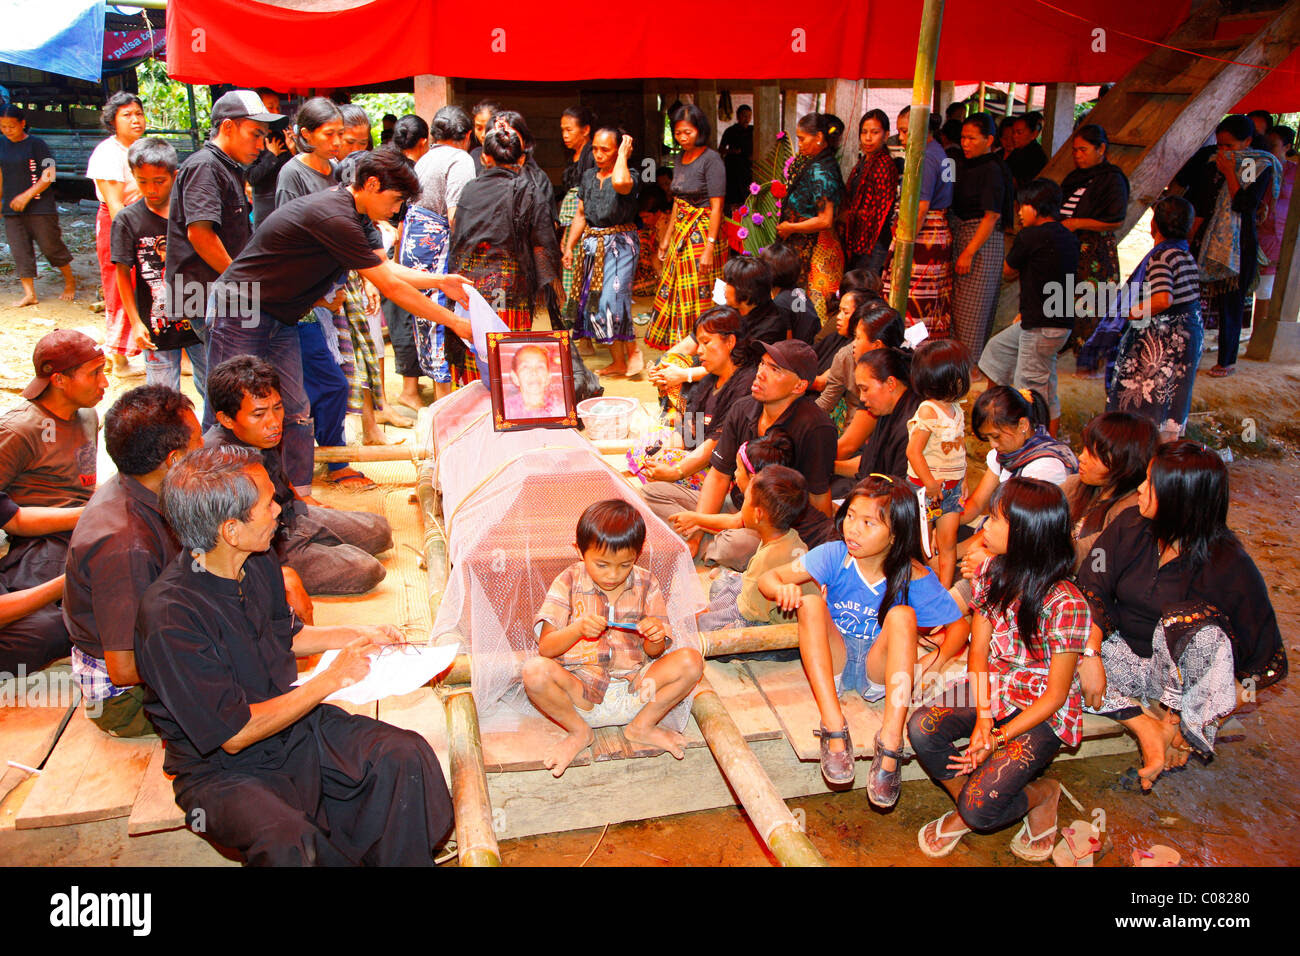 Burial ceremony, Toraja culture, Sulawesi, Indonesia, Asia Stock Photo, Royalty Free Image